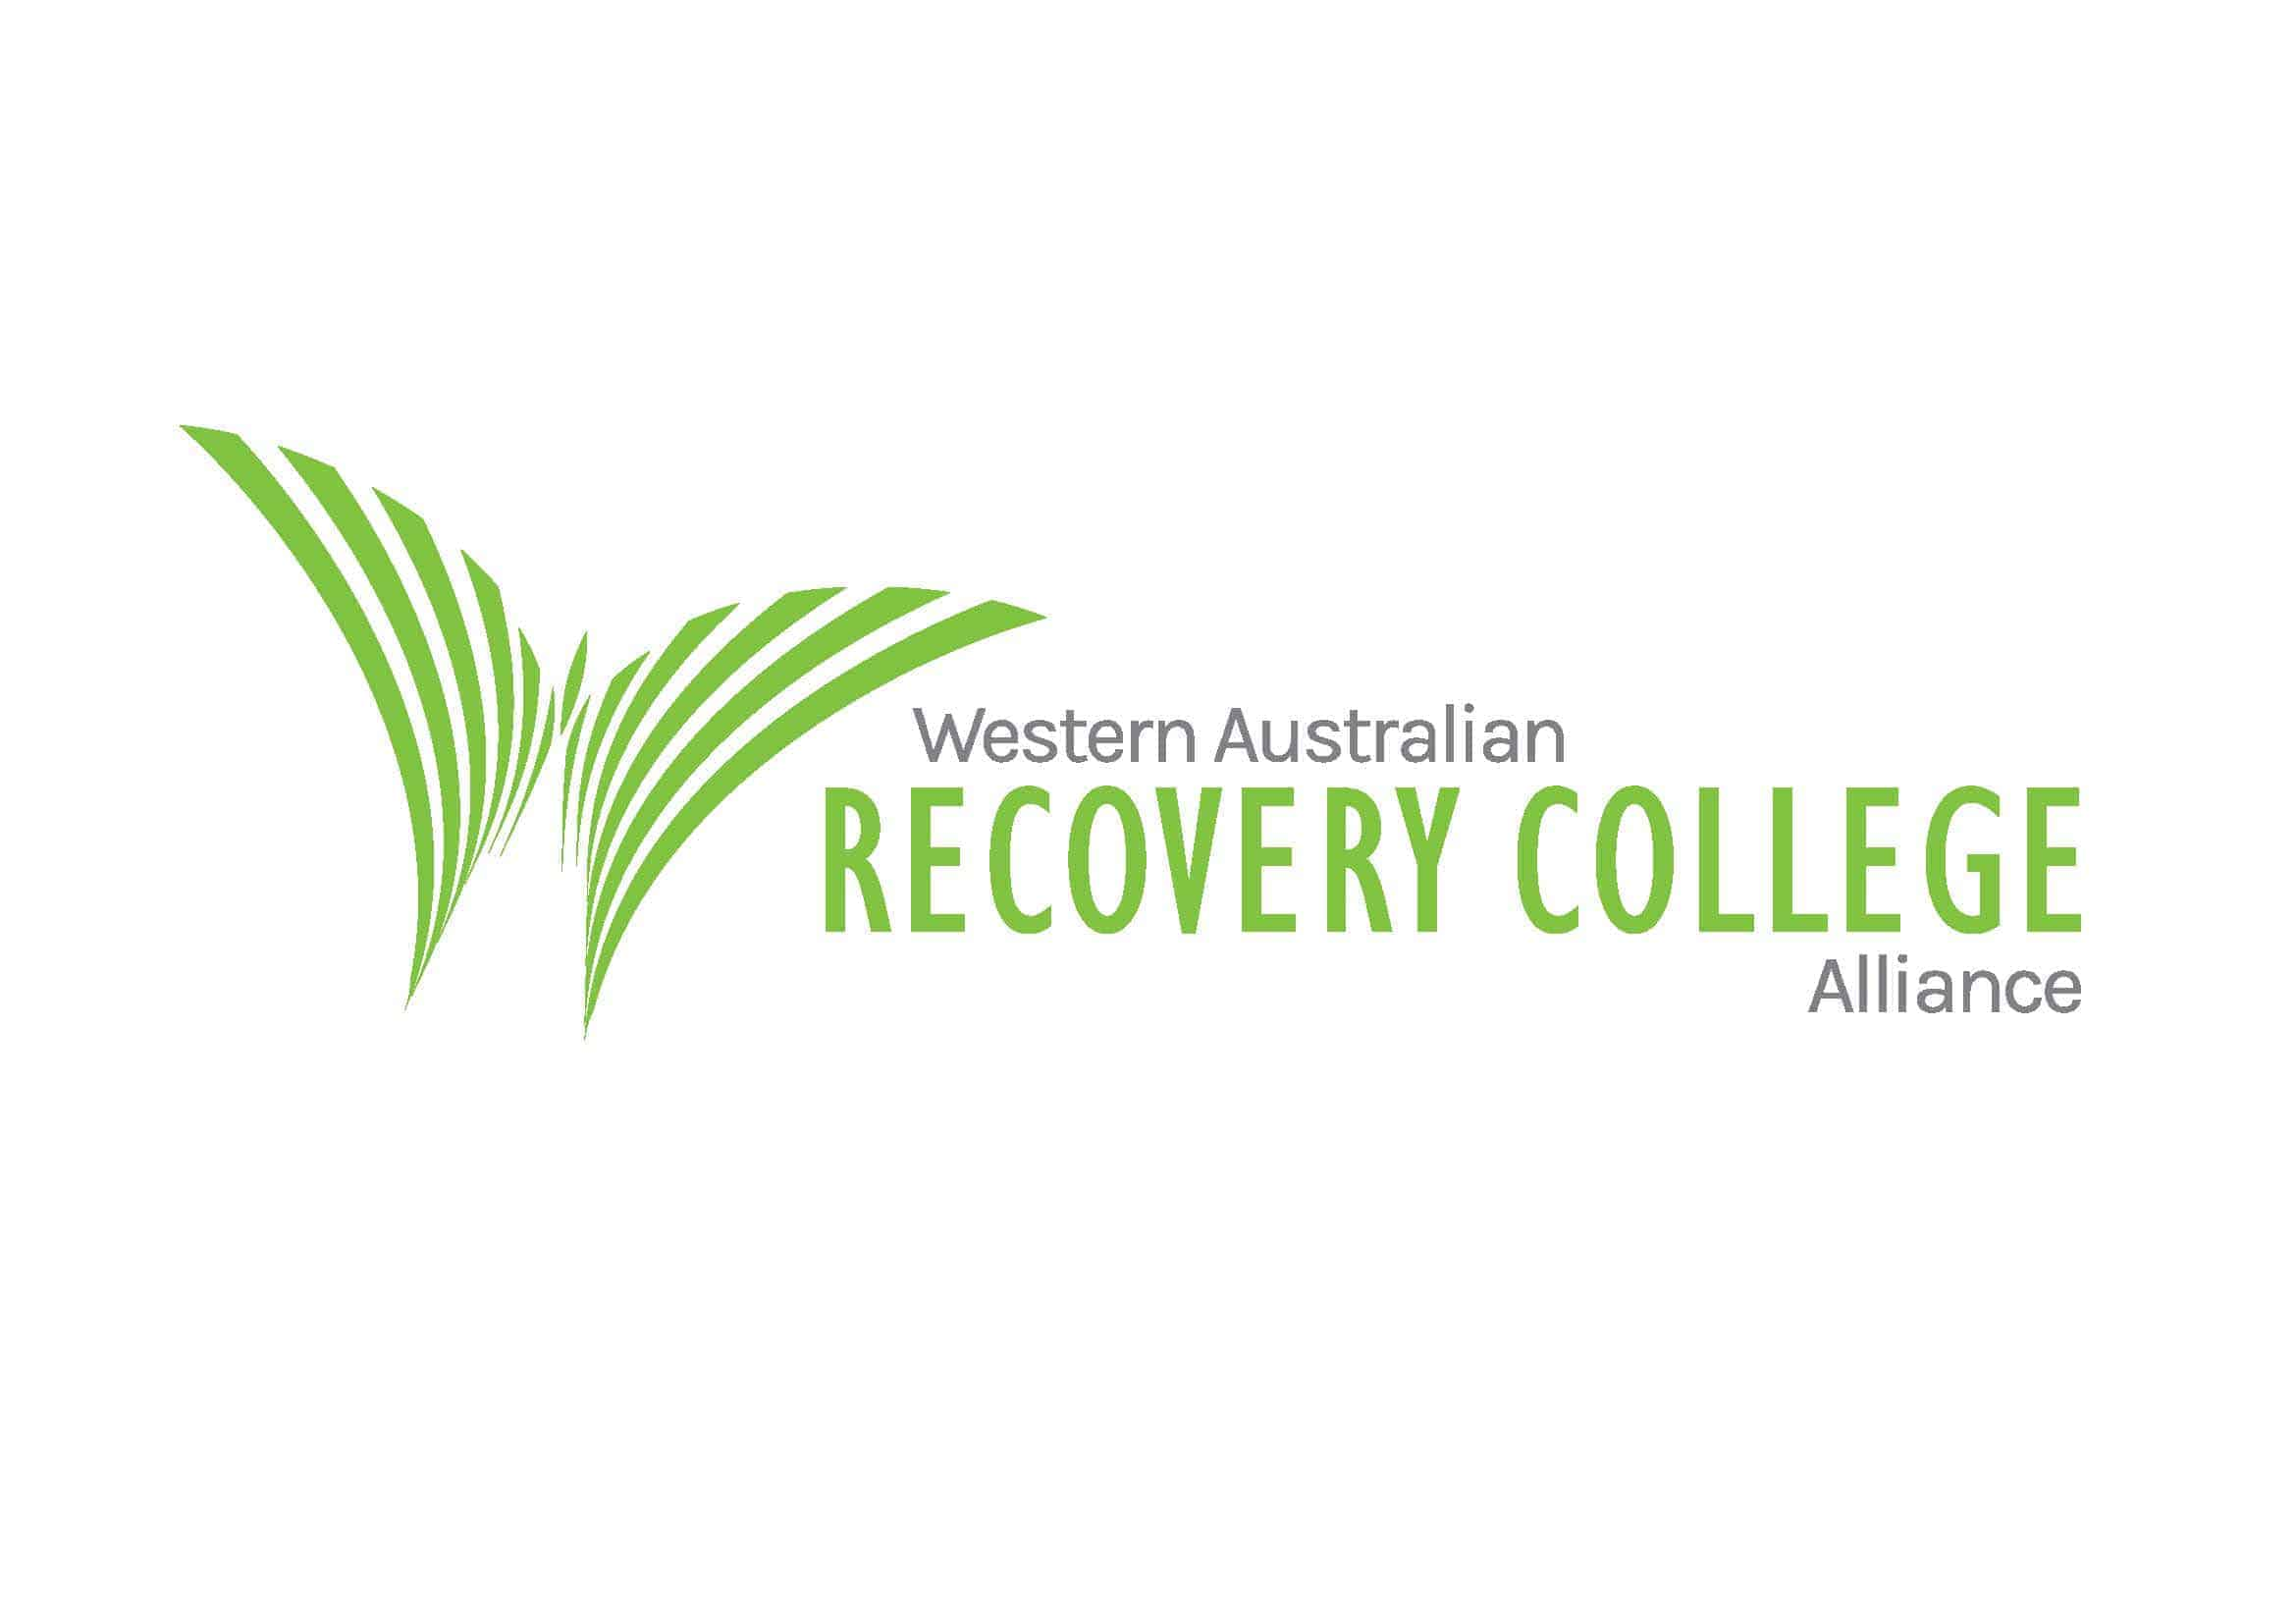 WA Recovery College Alliance Logo